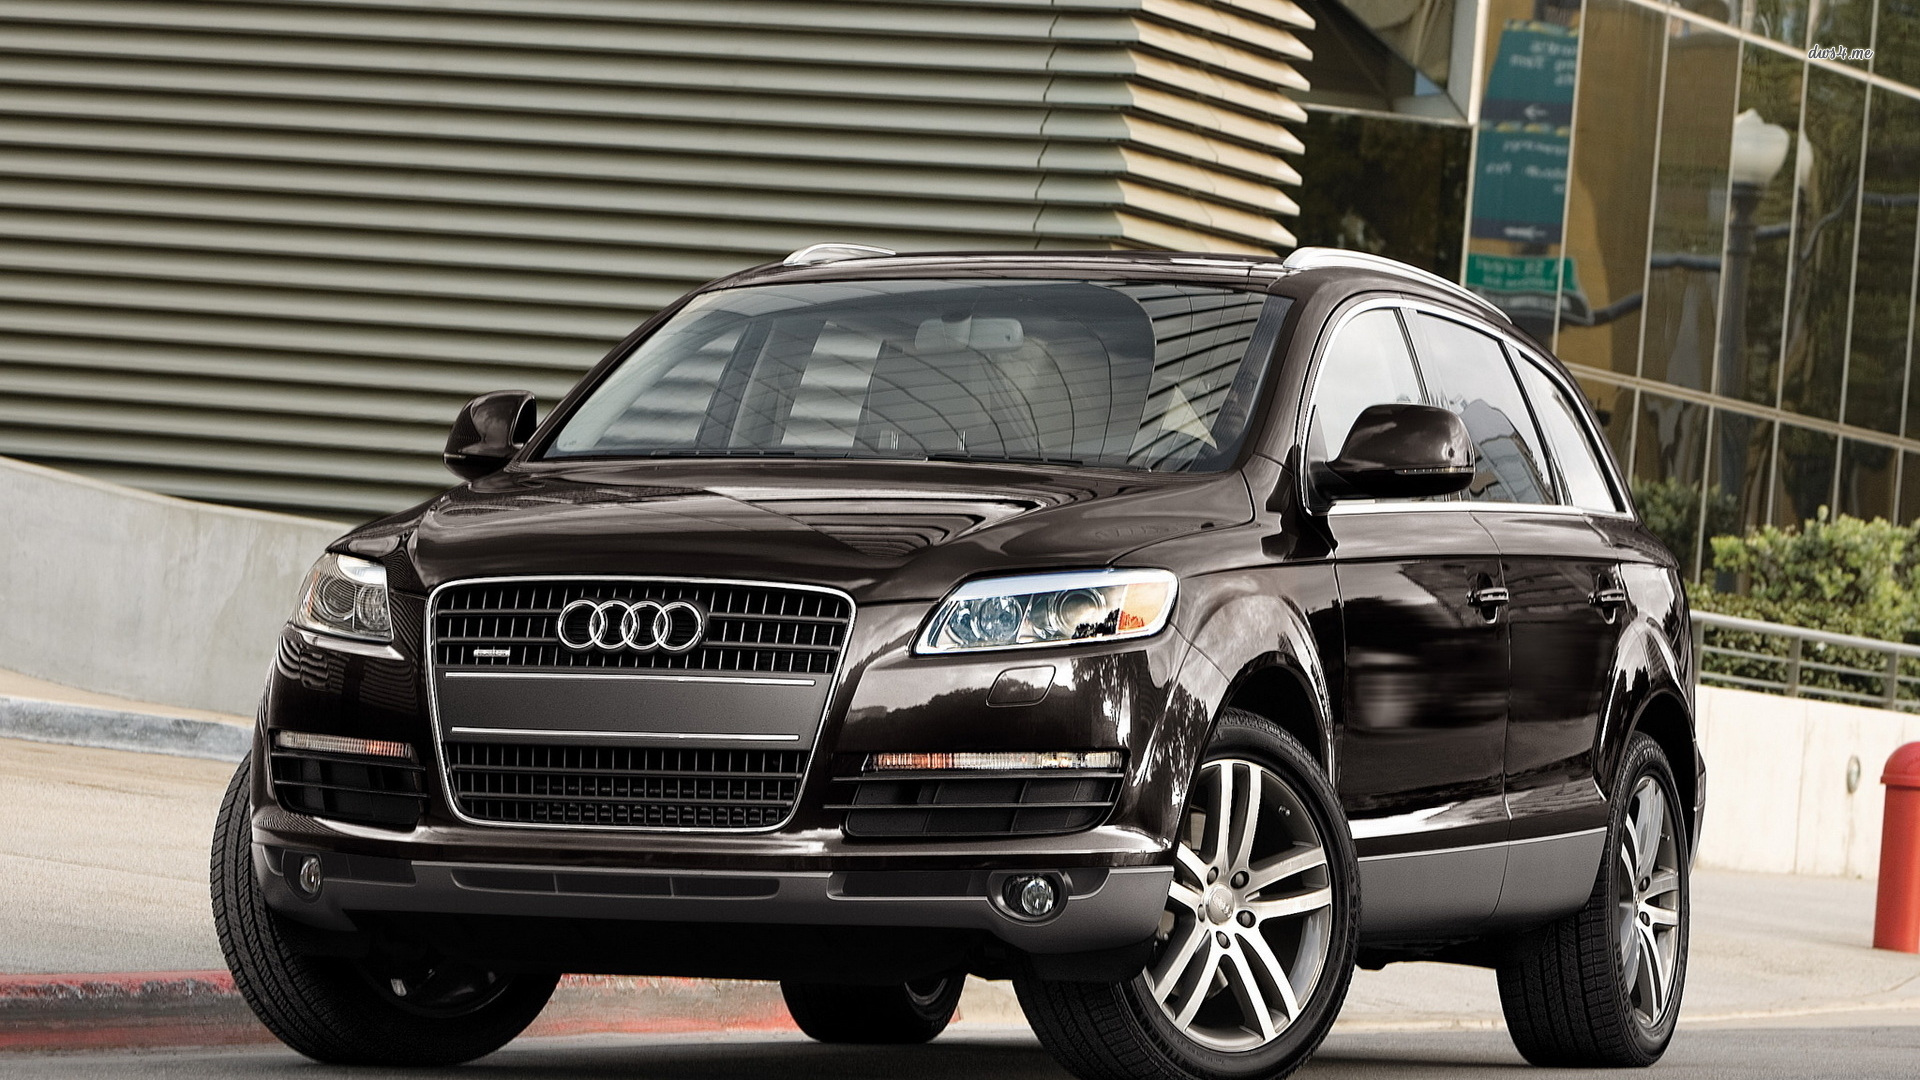 Front View Of A Black Audi Q7 Wallpaper Audi Q7 2006